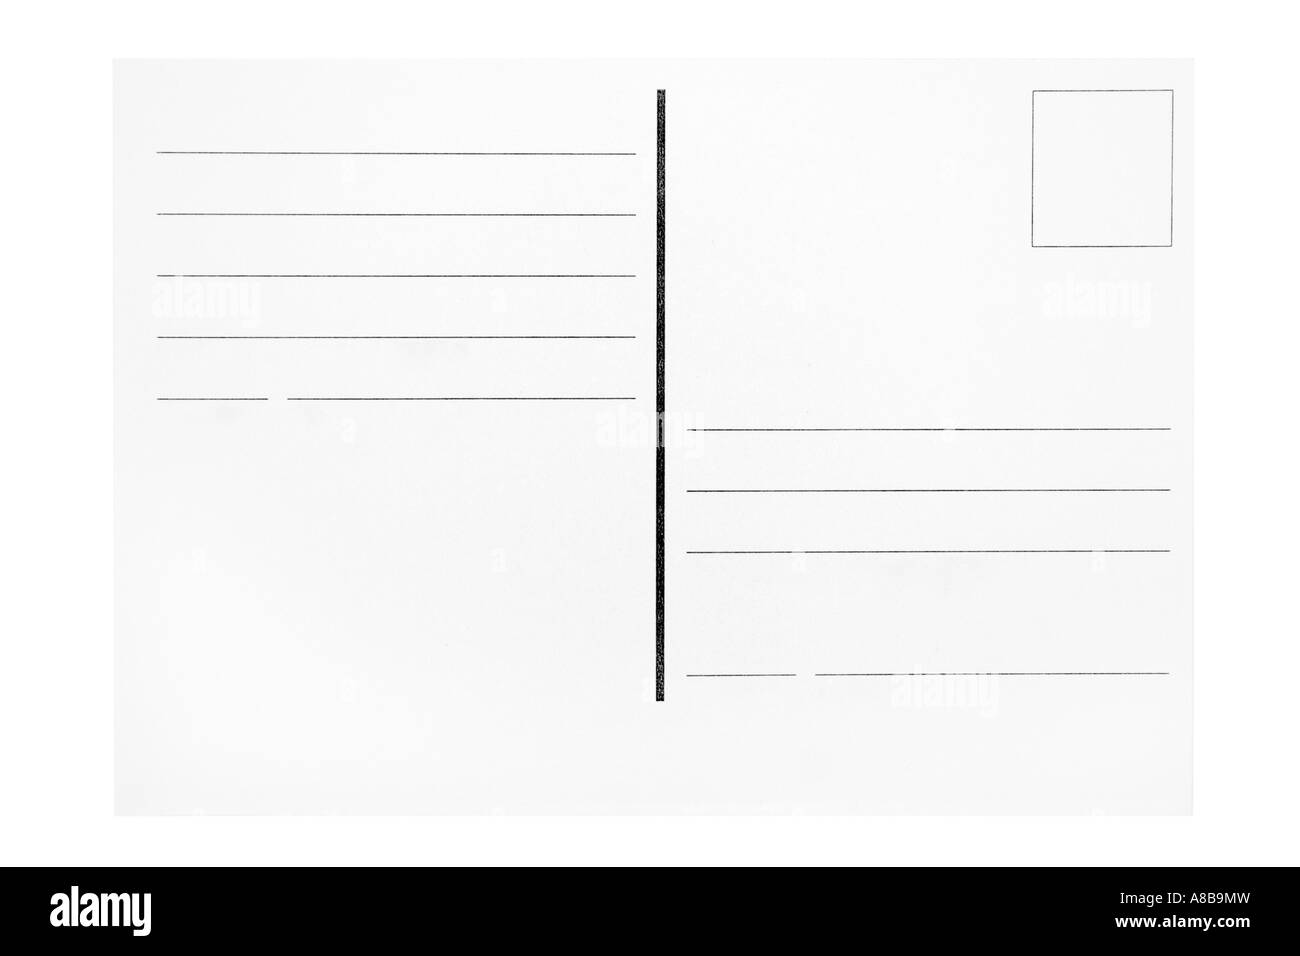 Customizable blank postcard isolated on a white background  - Stock Image